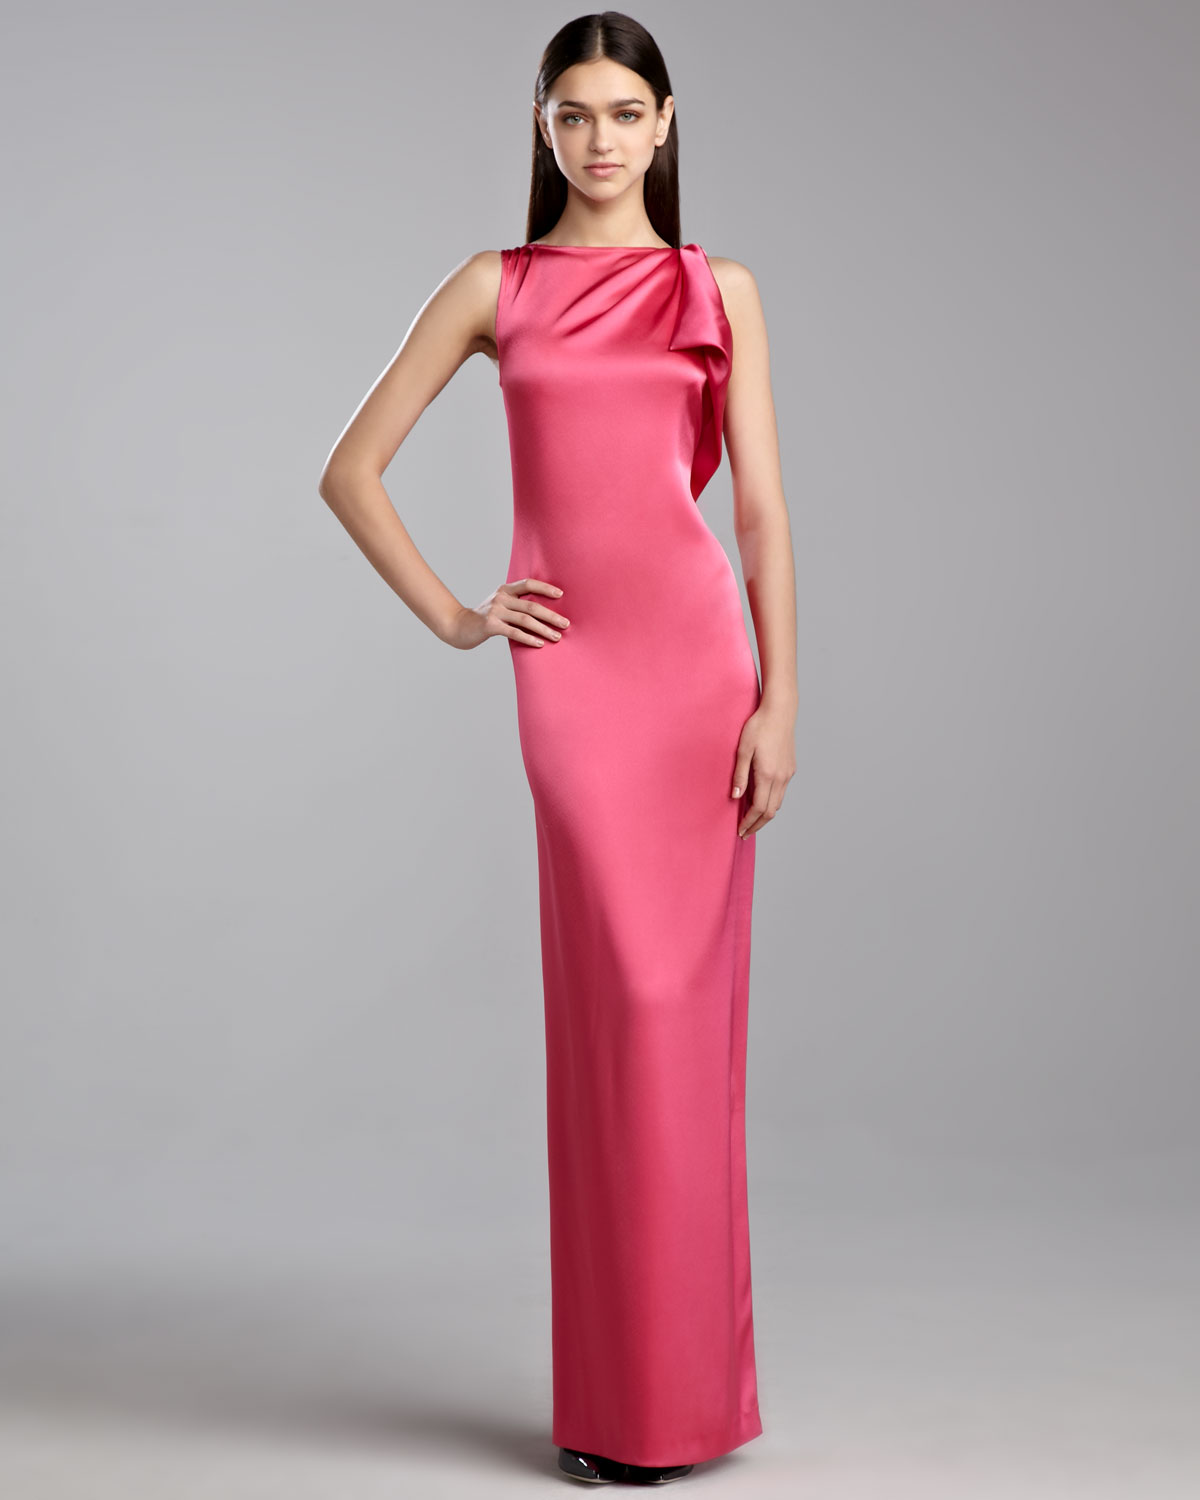 Satin Dressing Gown: St. John Liquid Satin Drape Gown In Pink